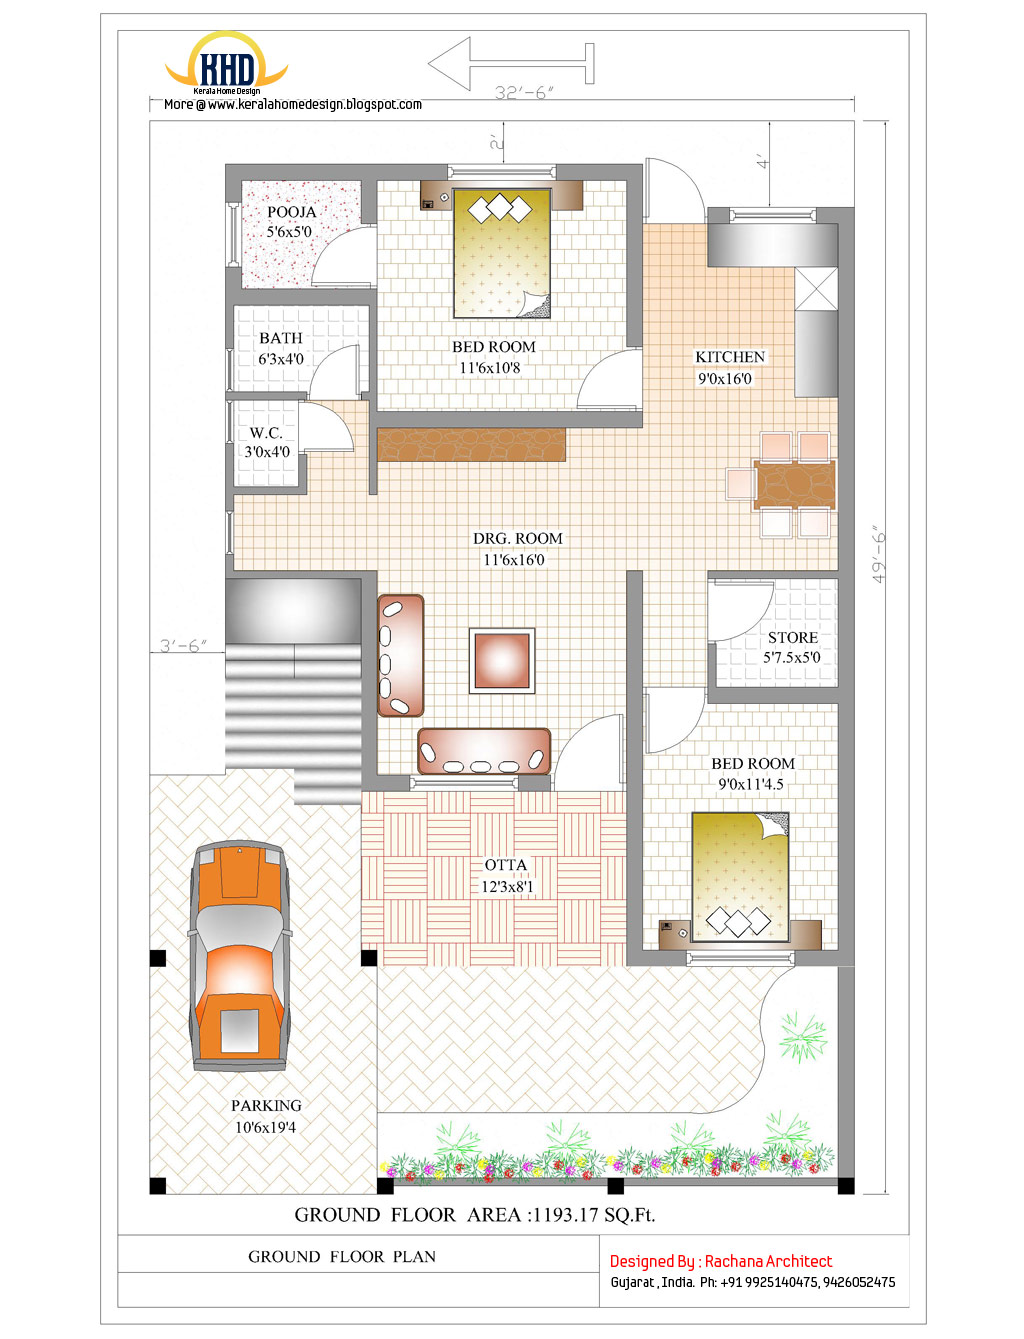 Home Designs And Floor Plans Wallpaper